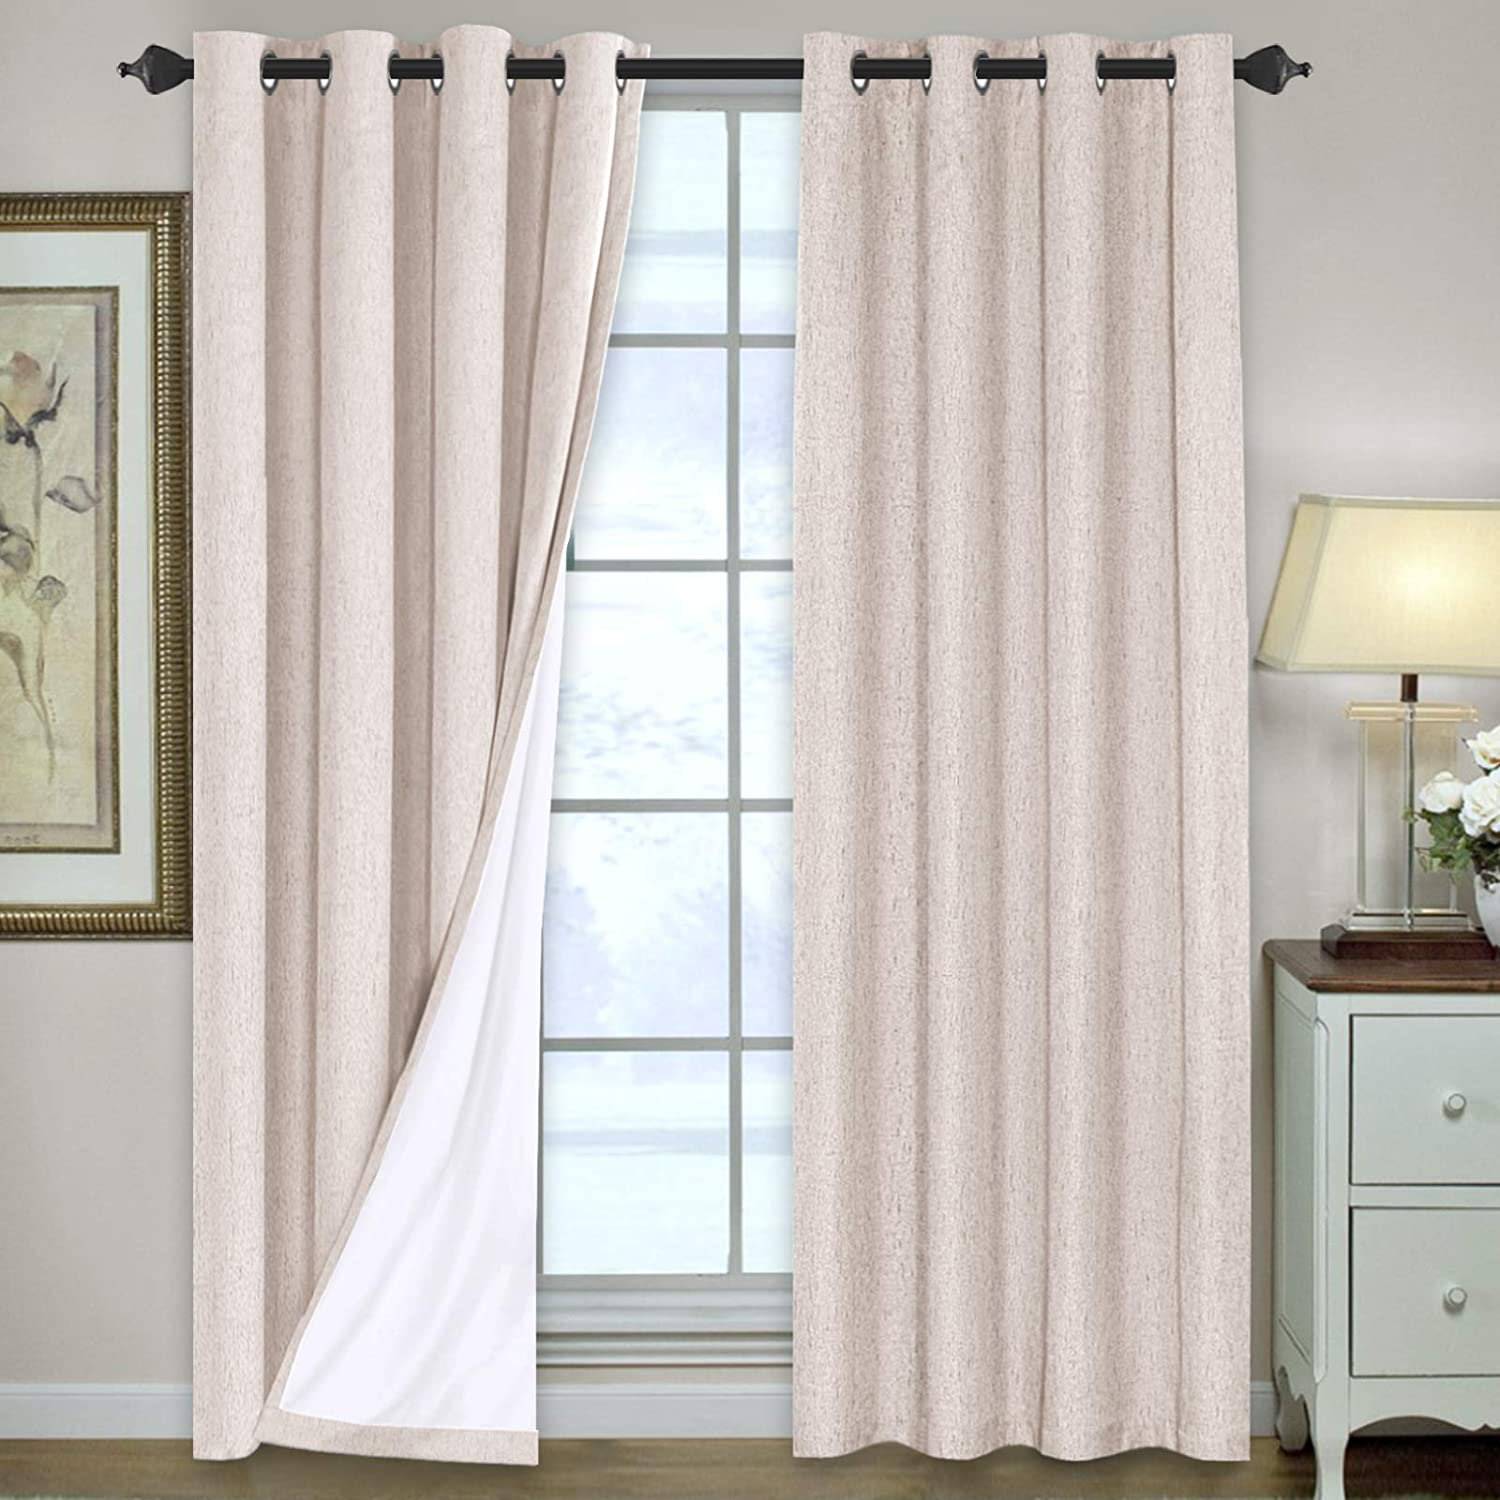 Linen Blackout Curtains 84 Inches Long 100% Total Blackout Heavy-Duty Draperies for Bedroom Living Room Thermal Insulated Textured Functional Window Treatment Anti Rust Grommet (Natural, 2 Panels)